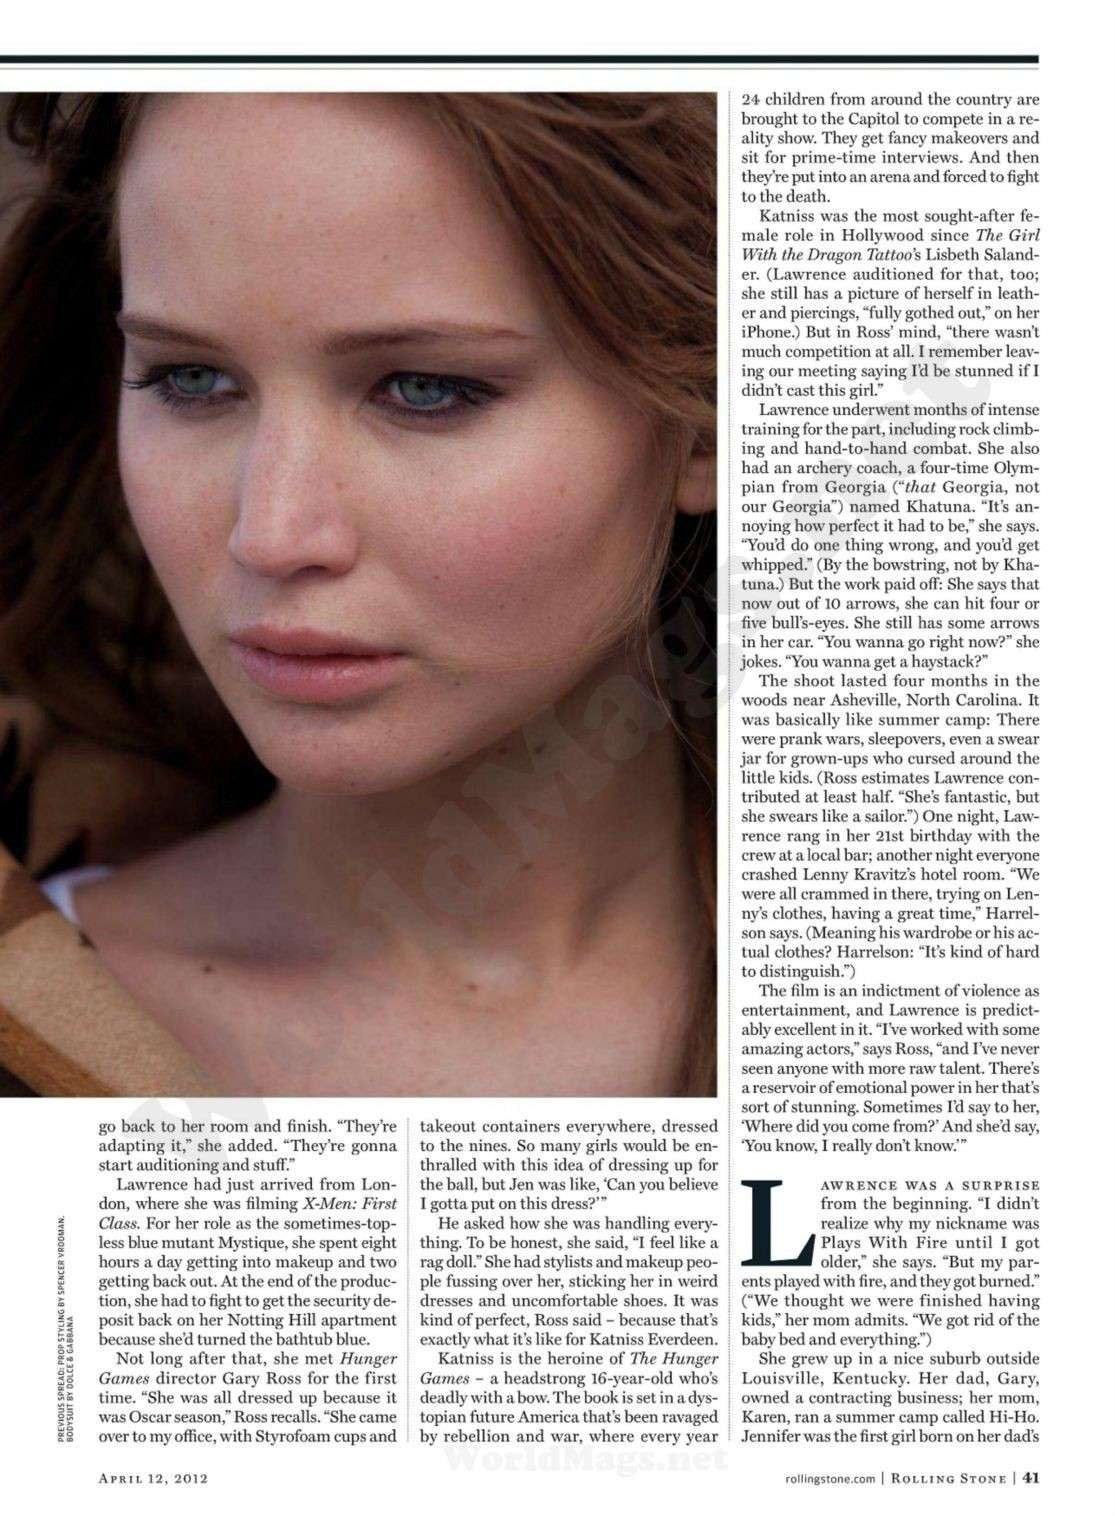 ■ Katniss Everdeen • Jennifer Lawrence ■ - Page 4 Rollin14